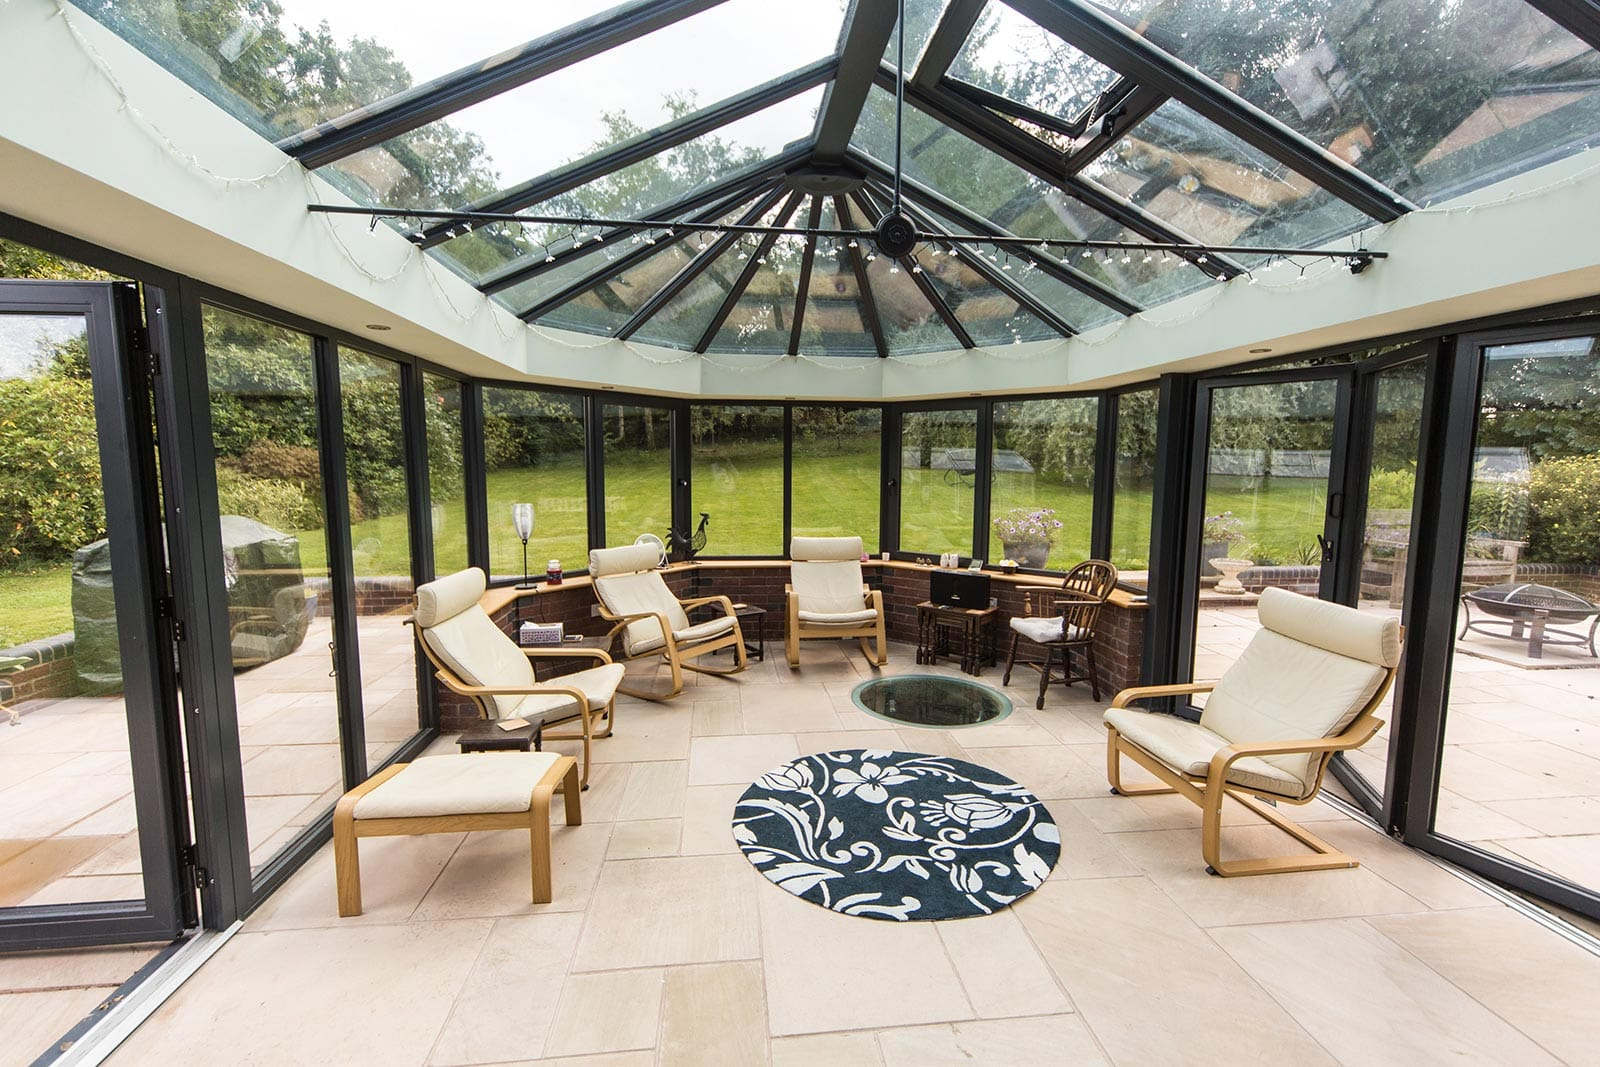 Victorian Conservatory and Glass Roof Yorkshire